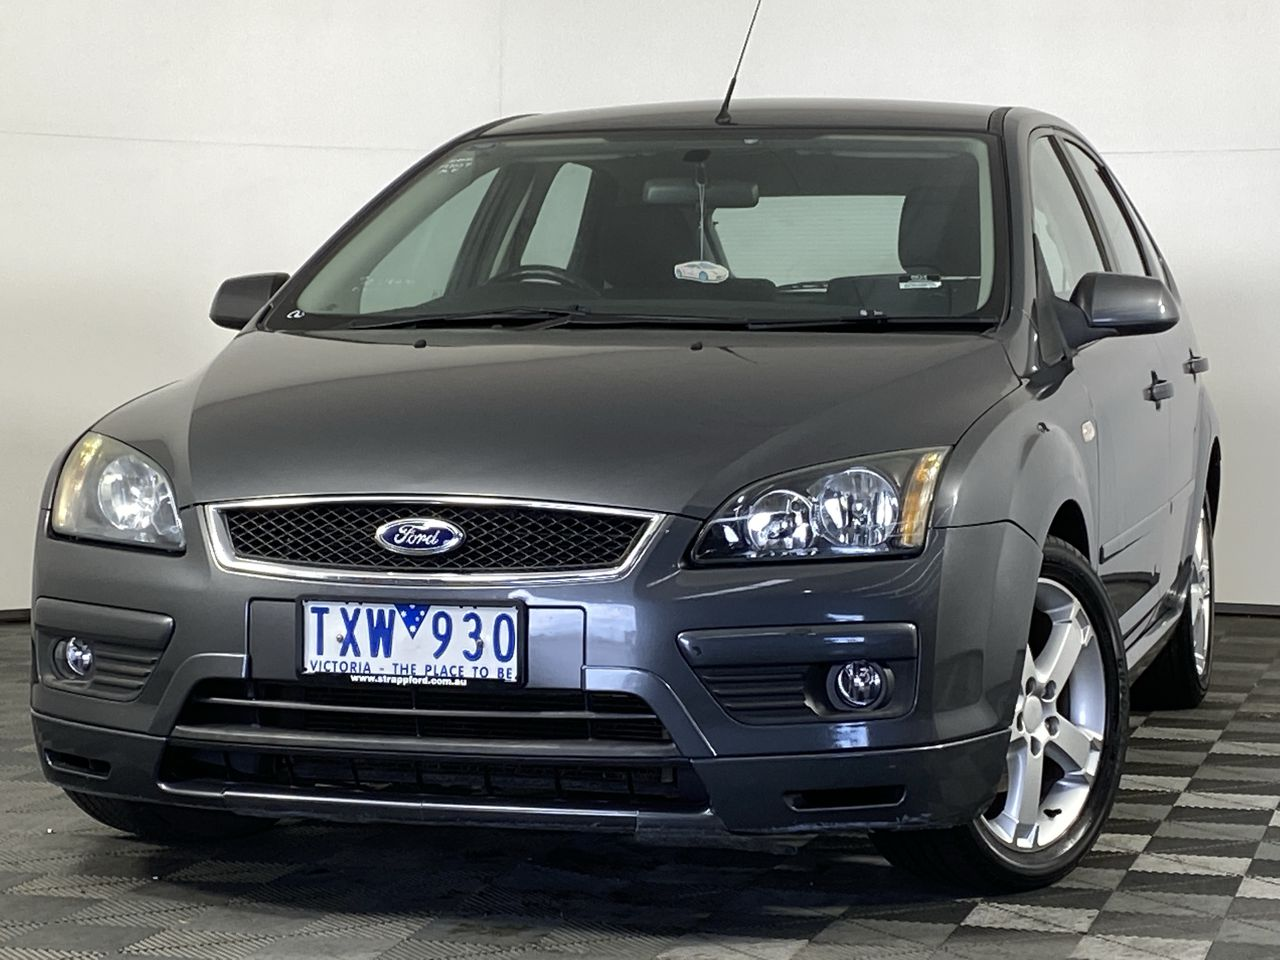 2005 Ford Focus Zetec LS Manual Hatchback